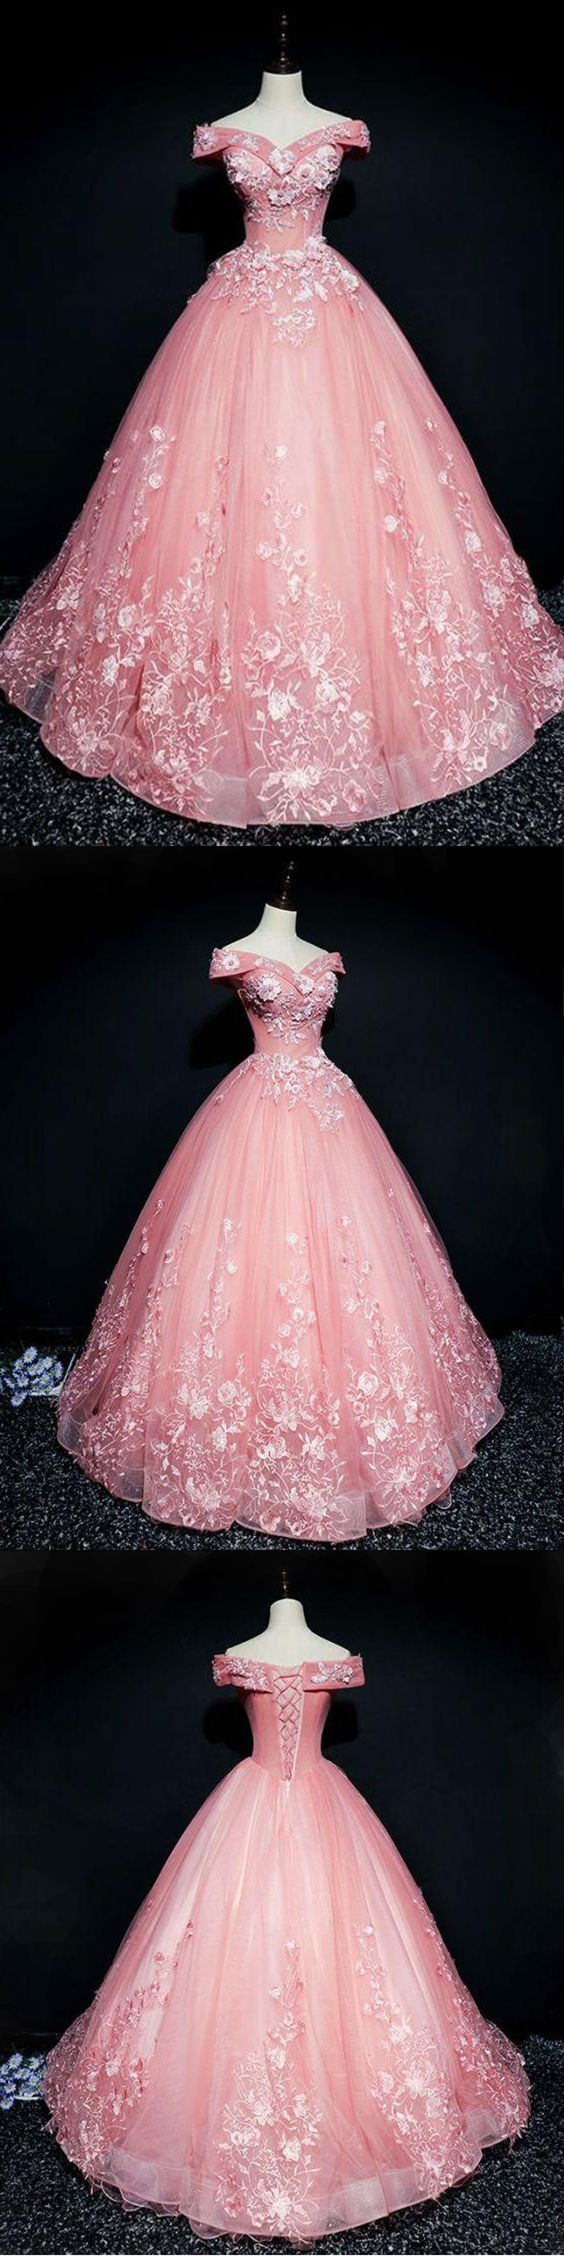 Pink organza floor length prom dress, V neck, off shoulder, winter formal prom dresses with appliques,,evening dress,long A-line evening dress